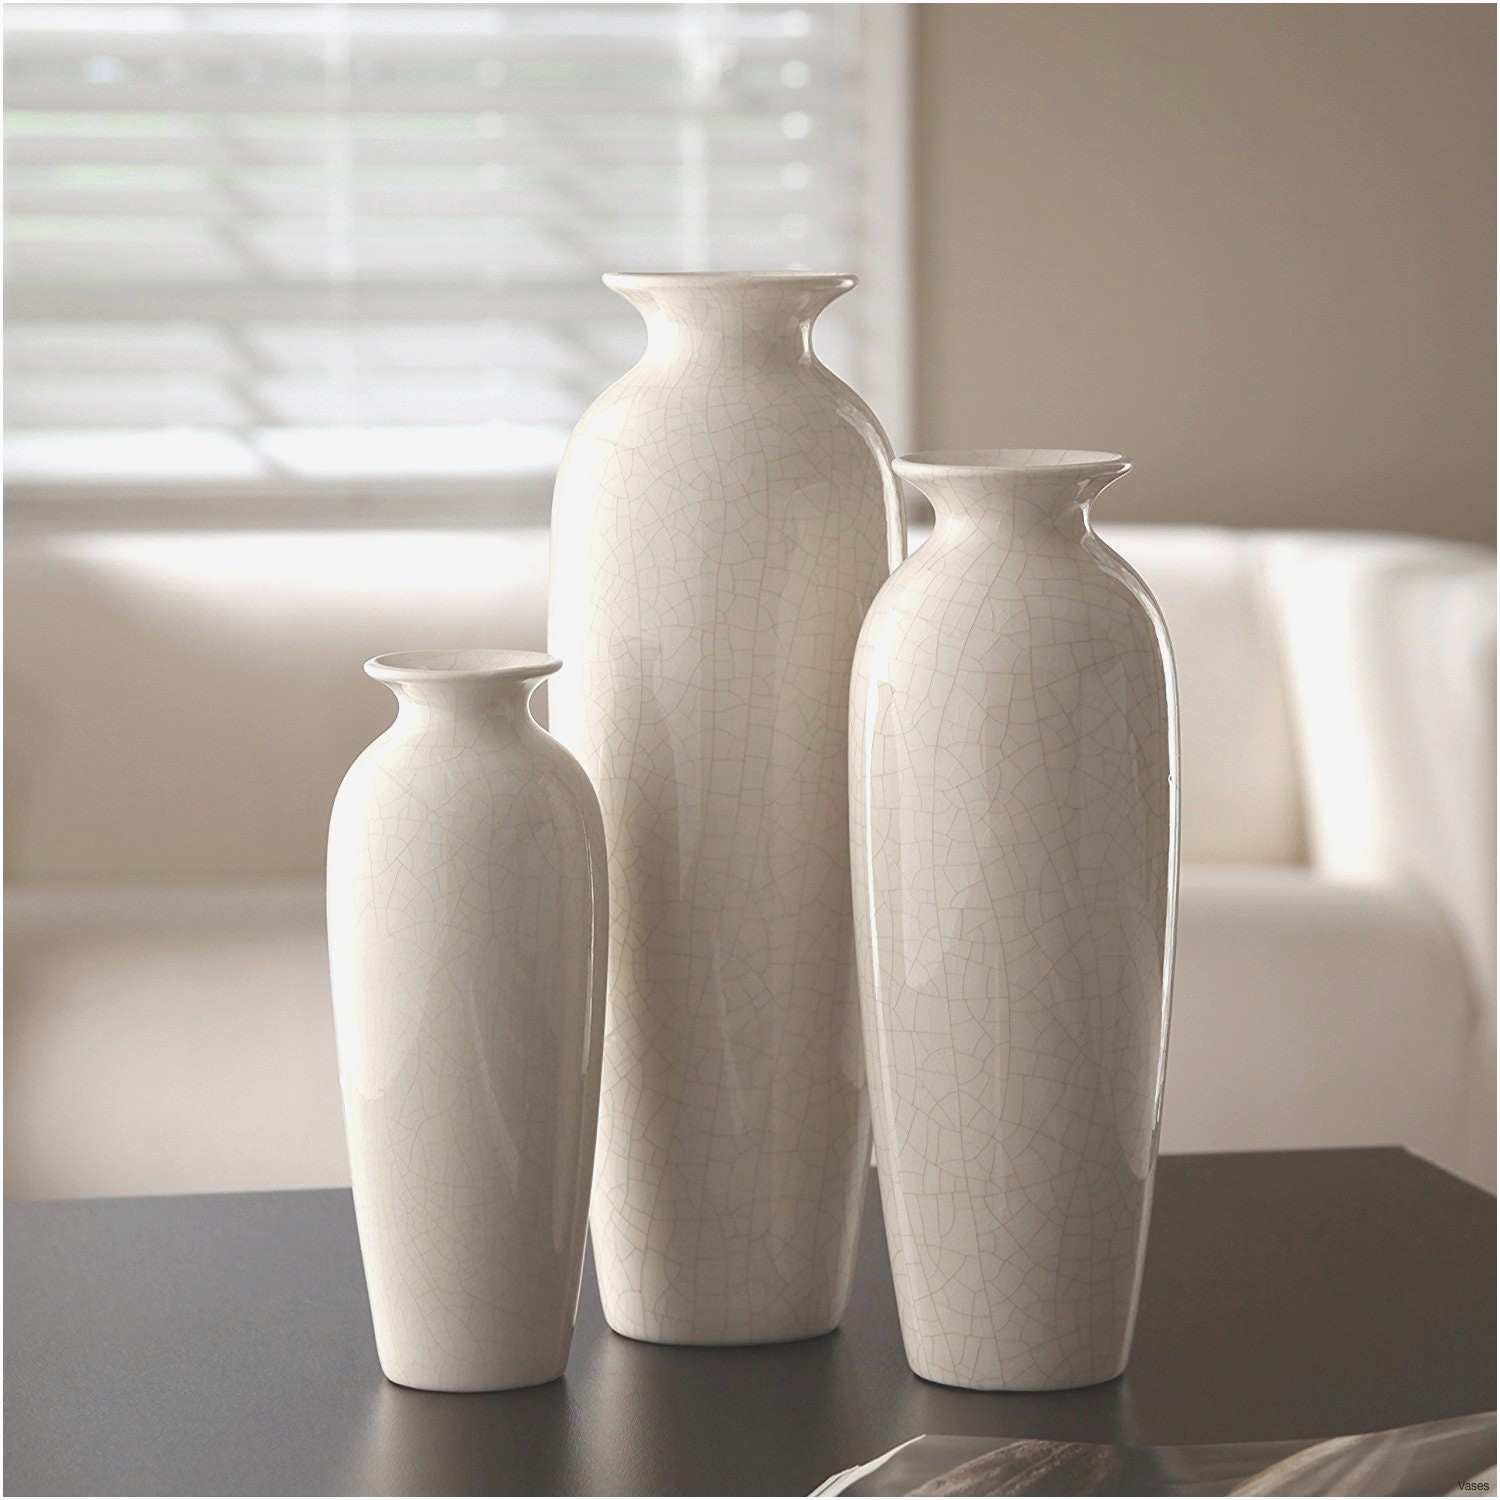 19 Amazing Stony Creek Lighted Vases 2021 free download stony creek lighted vases of vase set of 3 photos vases floating candle vase set glass holdersi regarding gallery of vase set of 3